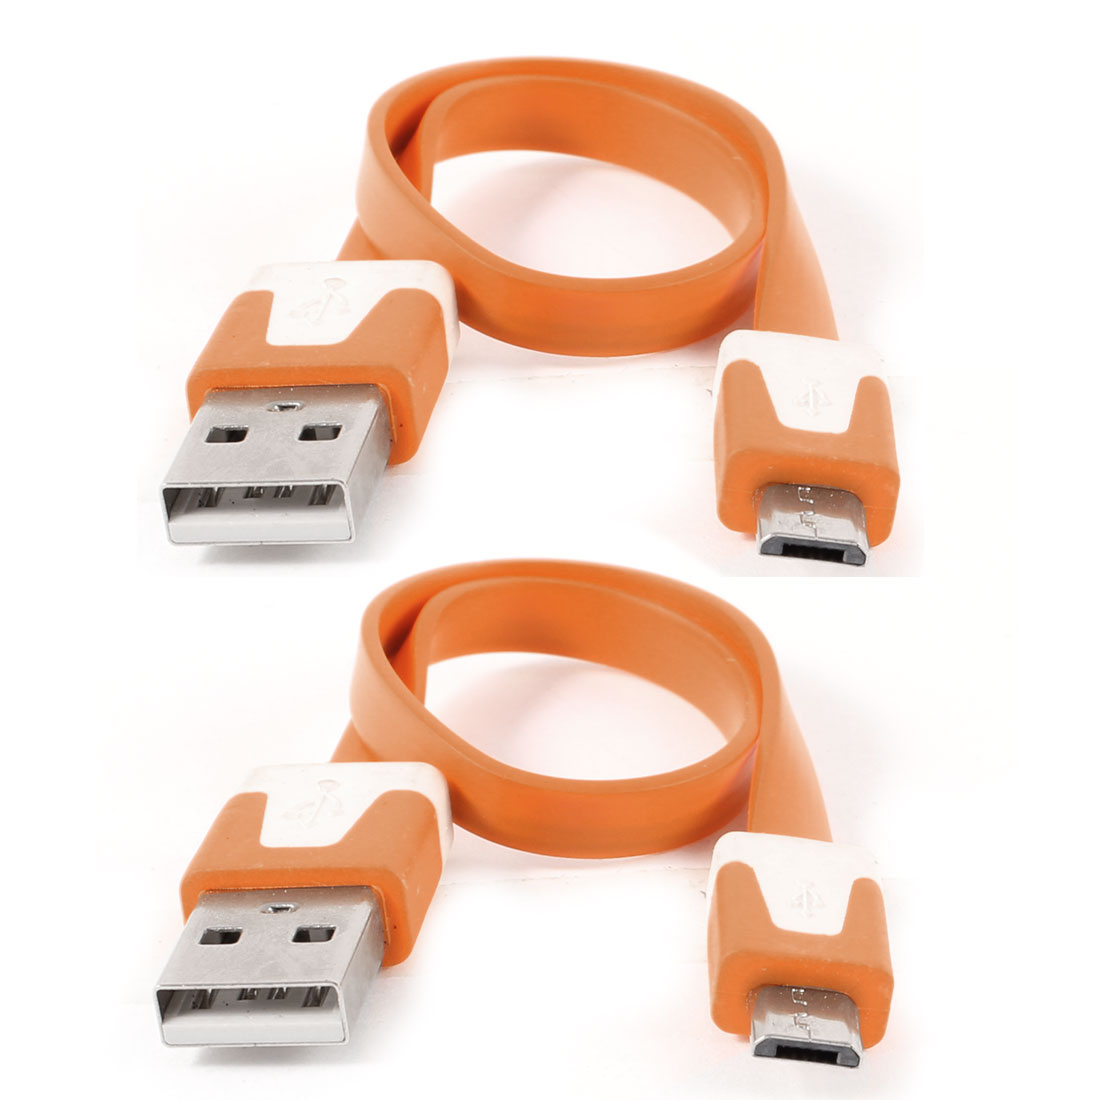 2pcs Orange USB2.0 A to Micro B 5Pin M/M Data Charger Flat Cable 23cm